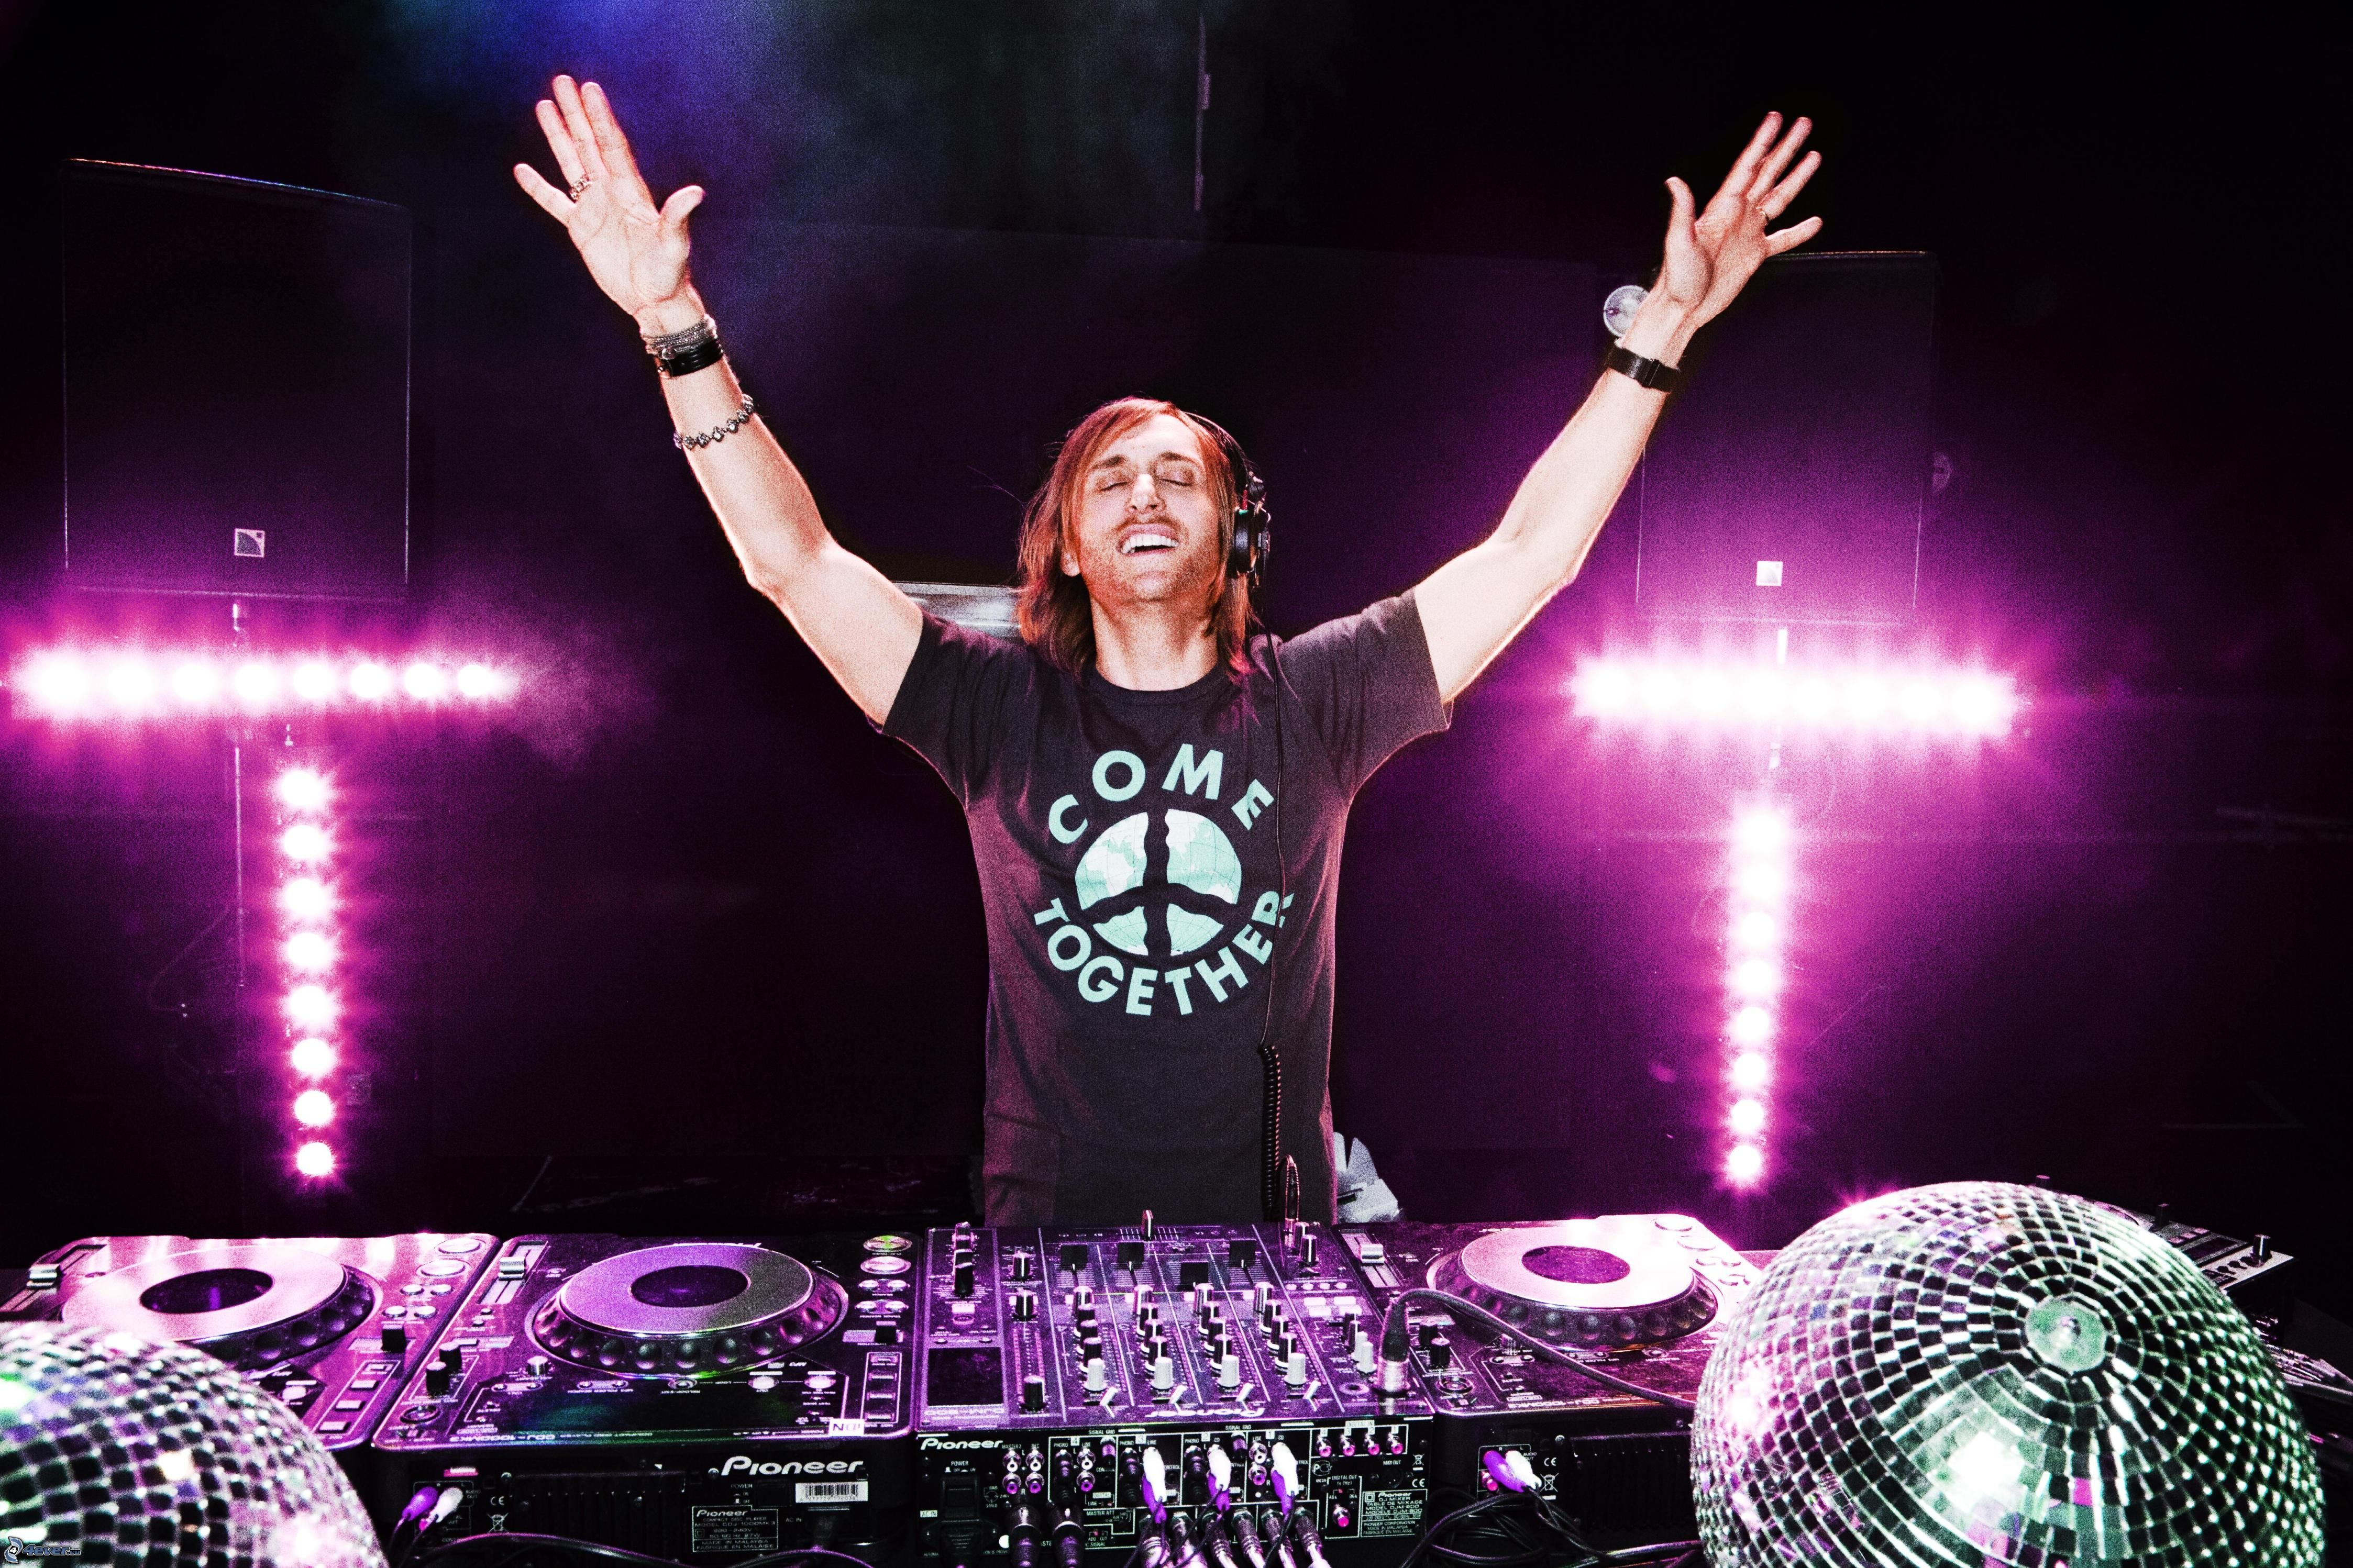 David guetta feat zara larsson this ones for you - 4bb2c